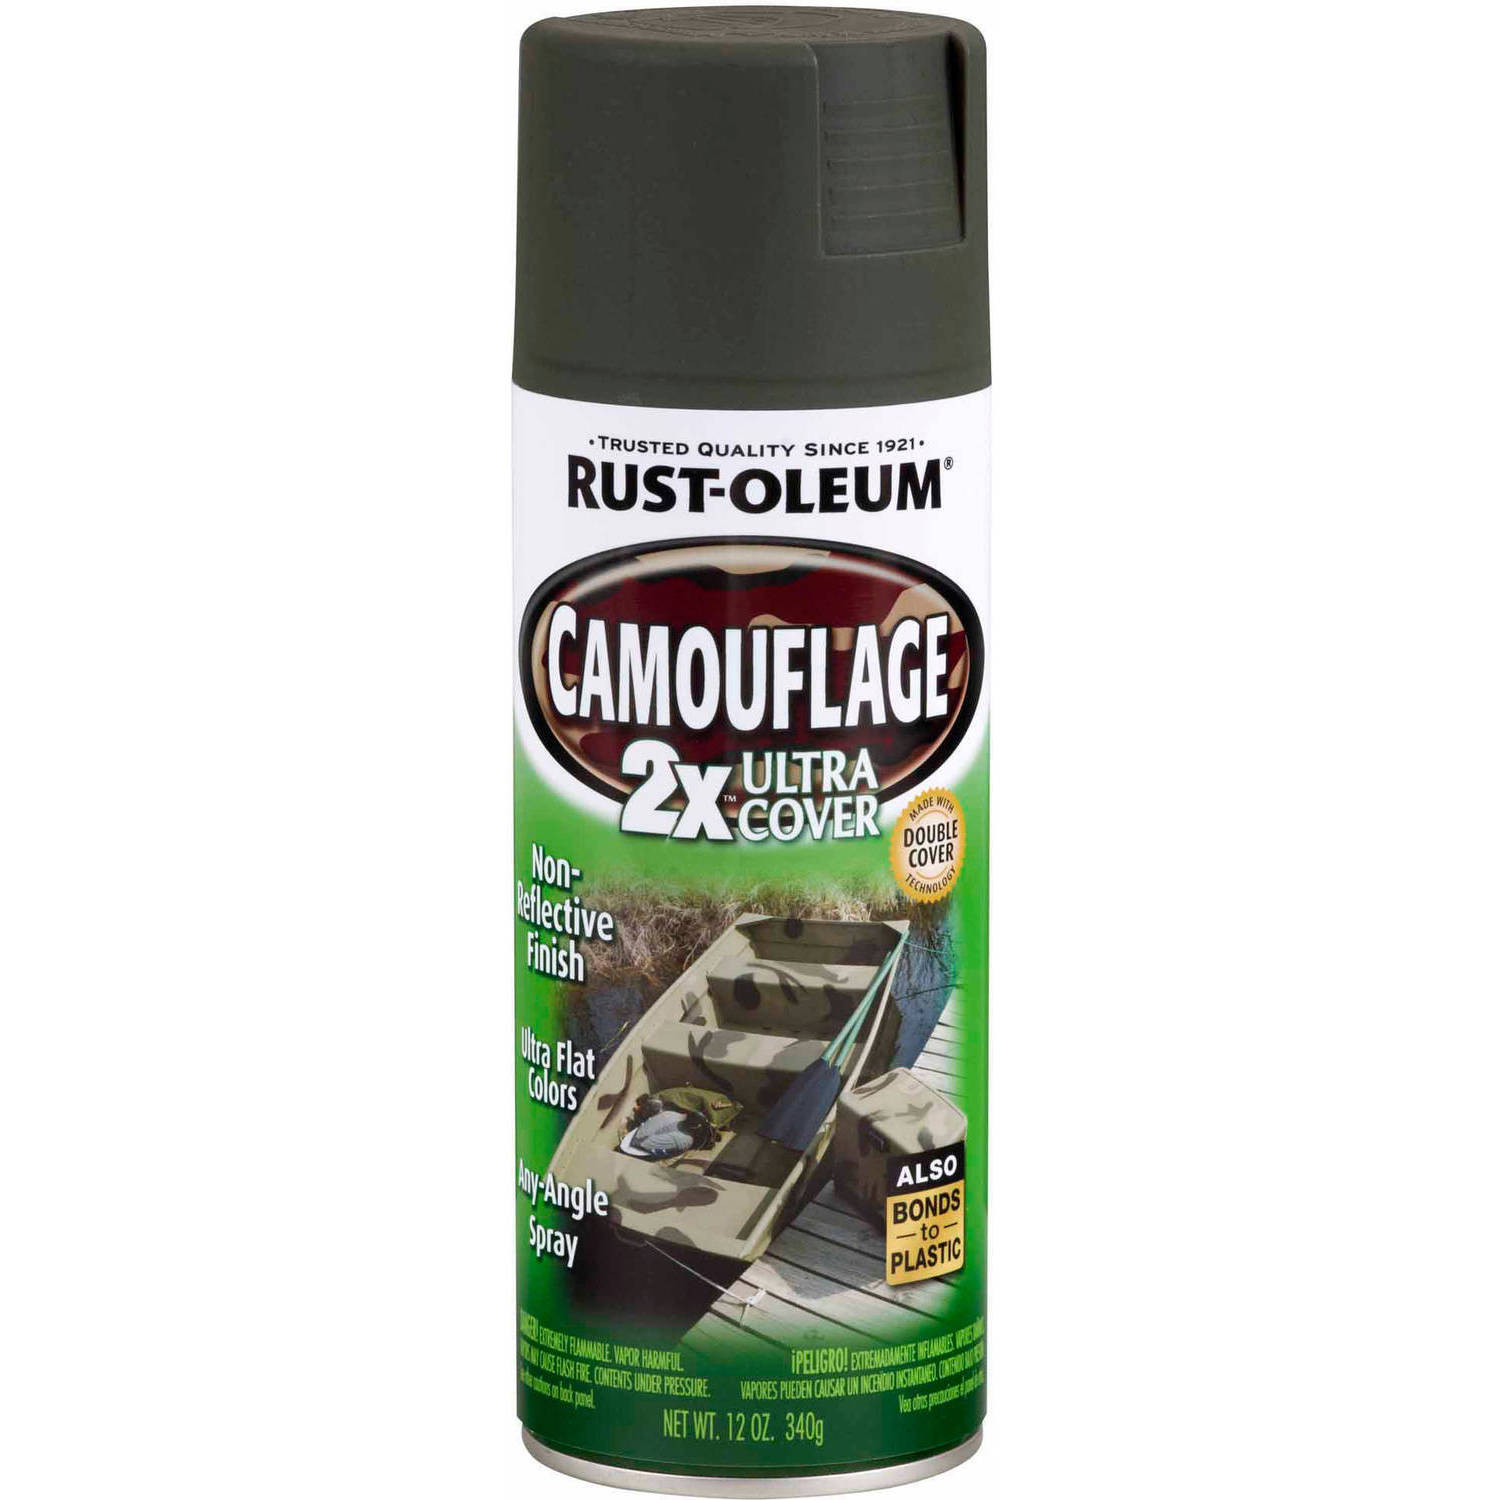 Rust-Oleum Camouflage Ultra Cover 2x